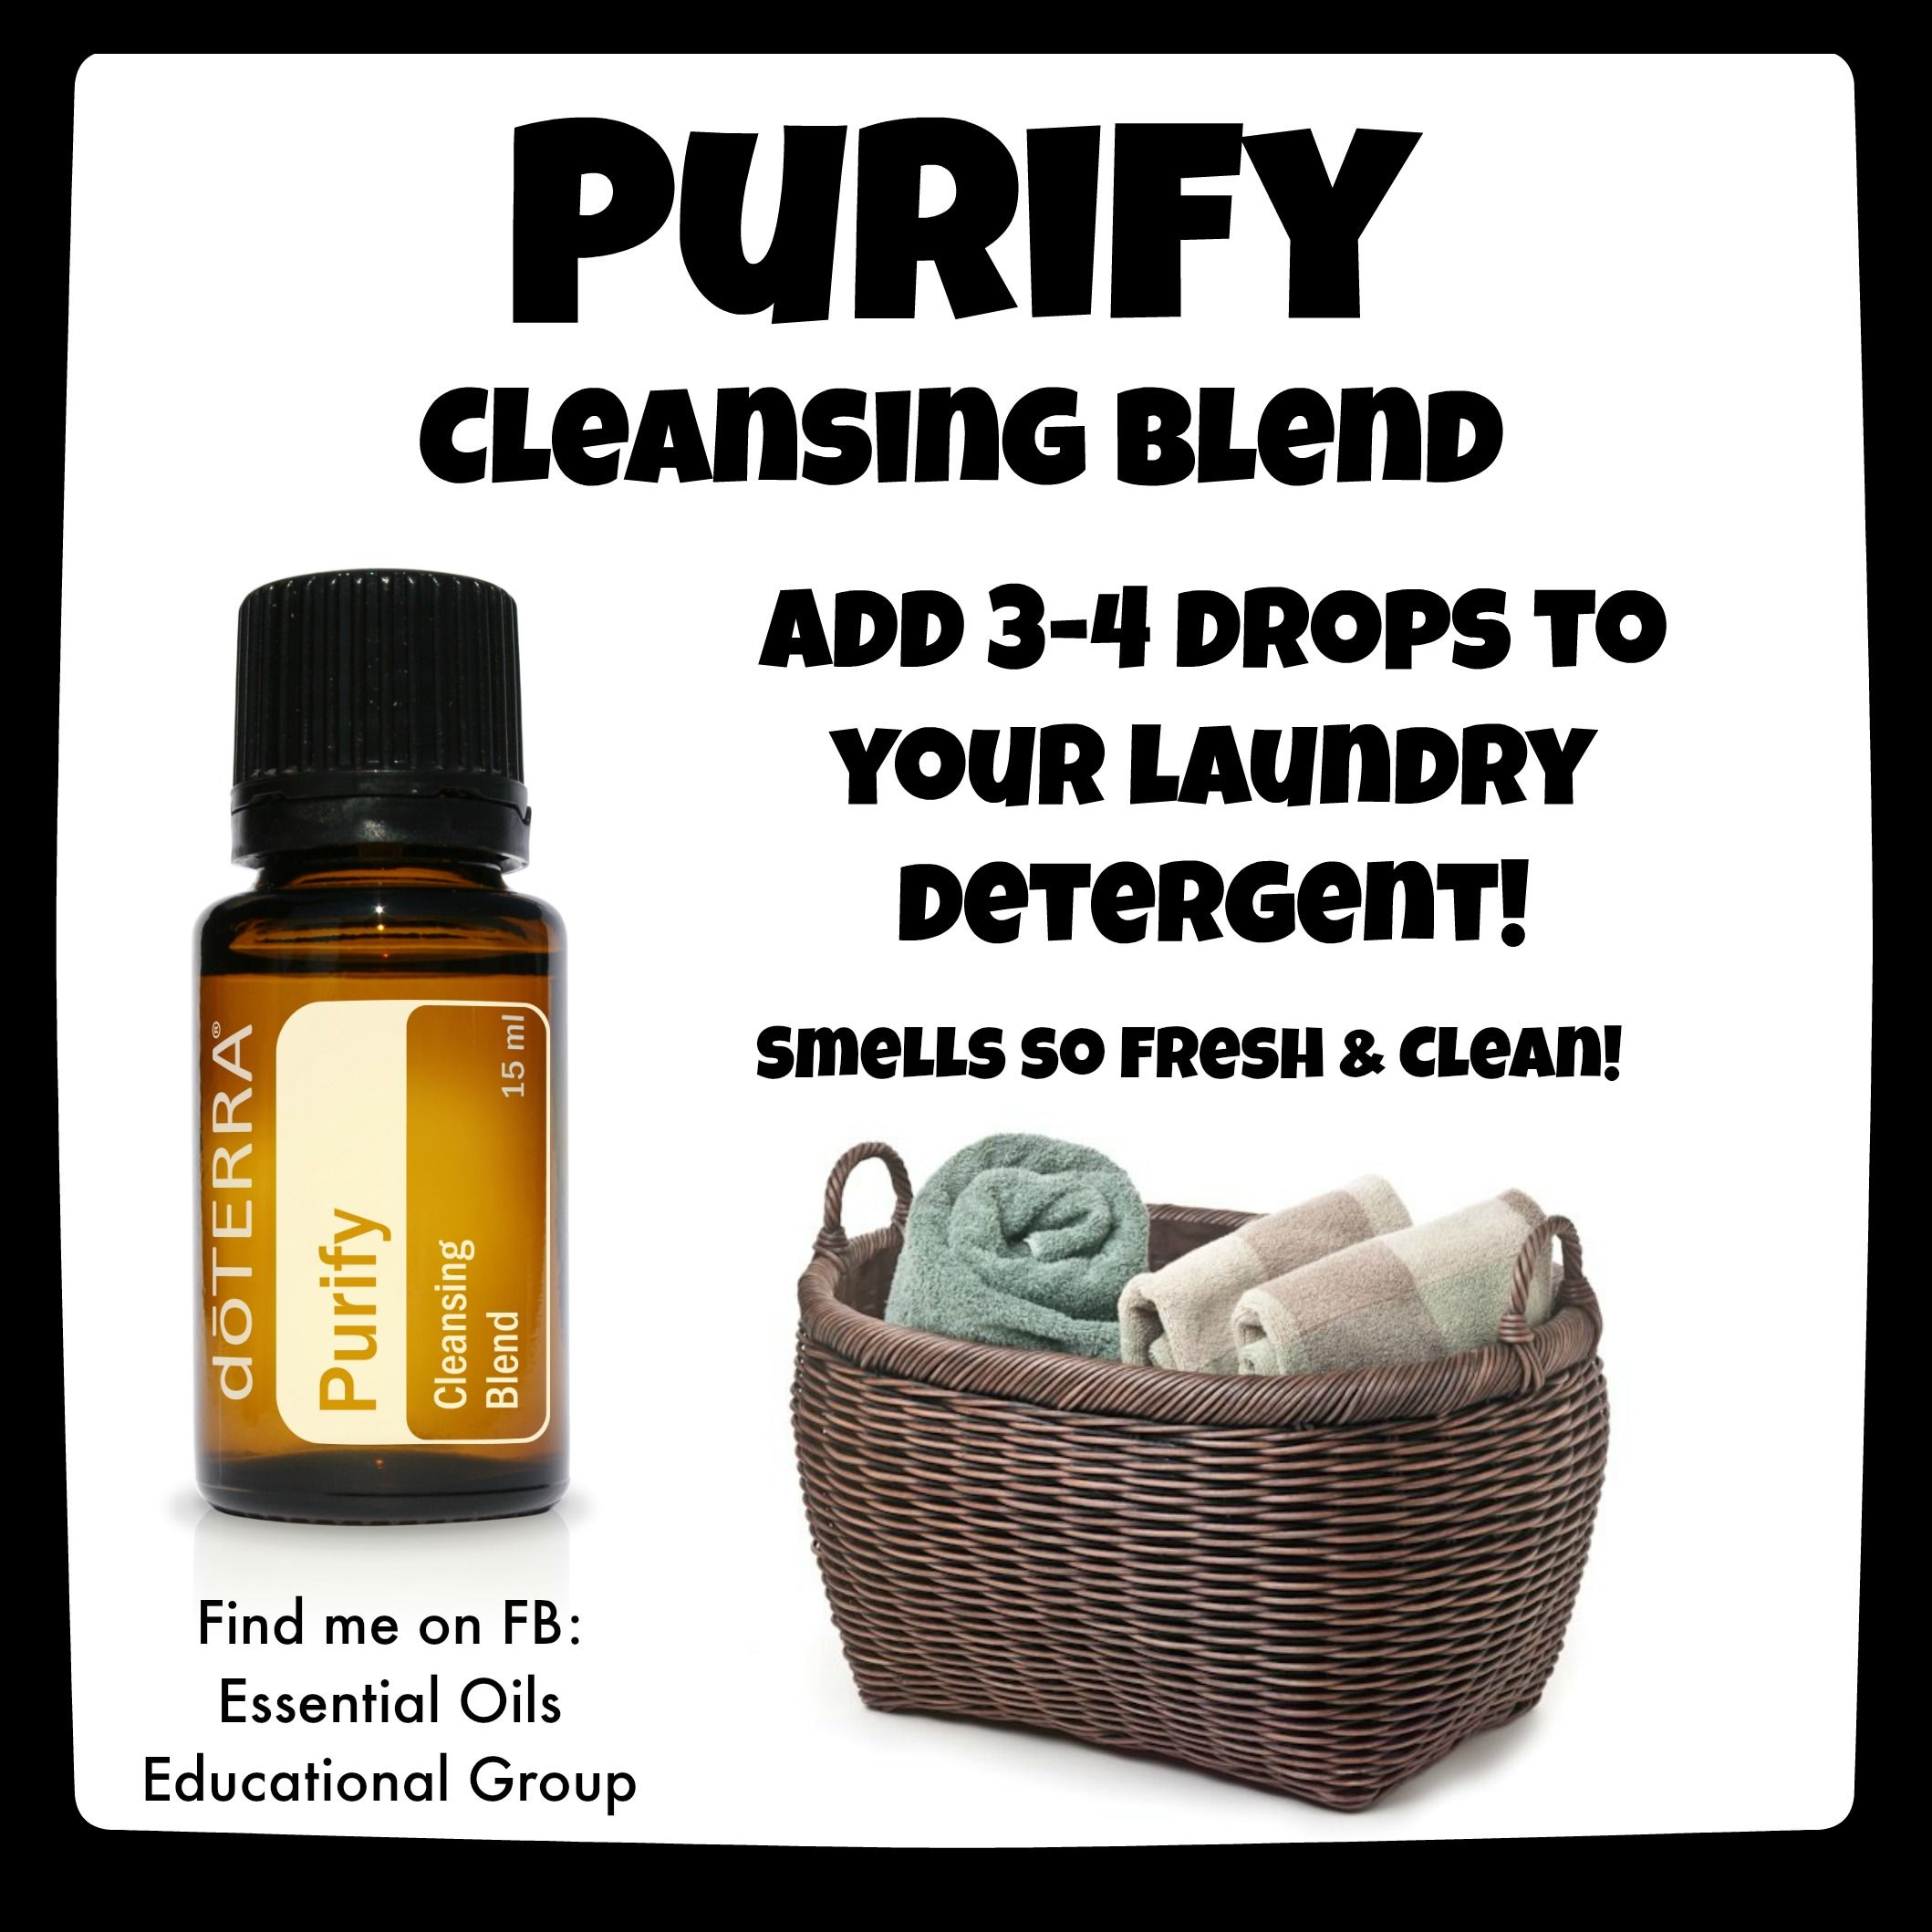 Doterra S Purify Cleansing Blend Great For Laundry Find Me On Fb